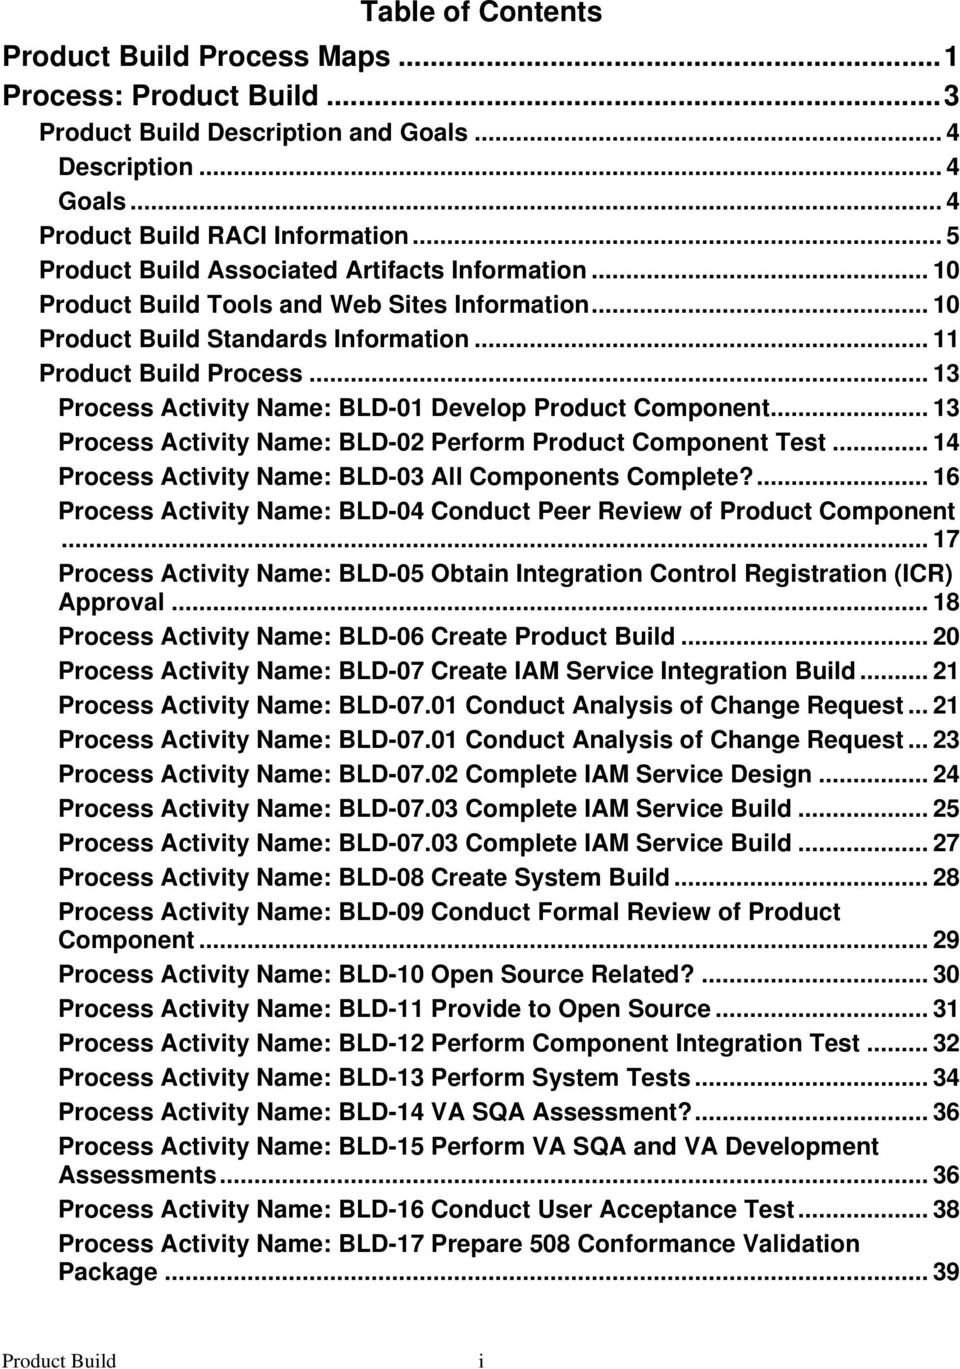 .. 13 Process Activity Name: BLD-01 Develop Product Component... 13 Process Activity Name: BLD-02 Perform Product Component Test... 14 Process Activity Name: BLD-03 All Components Complete?